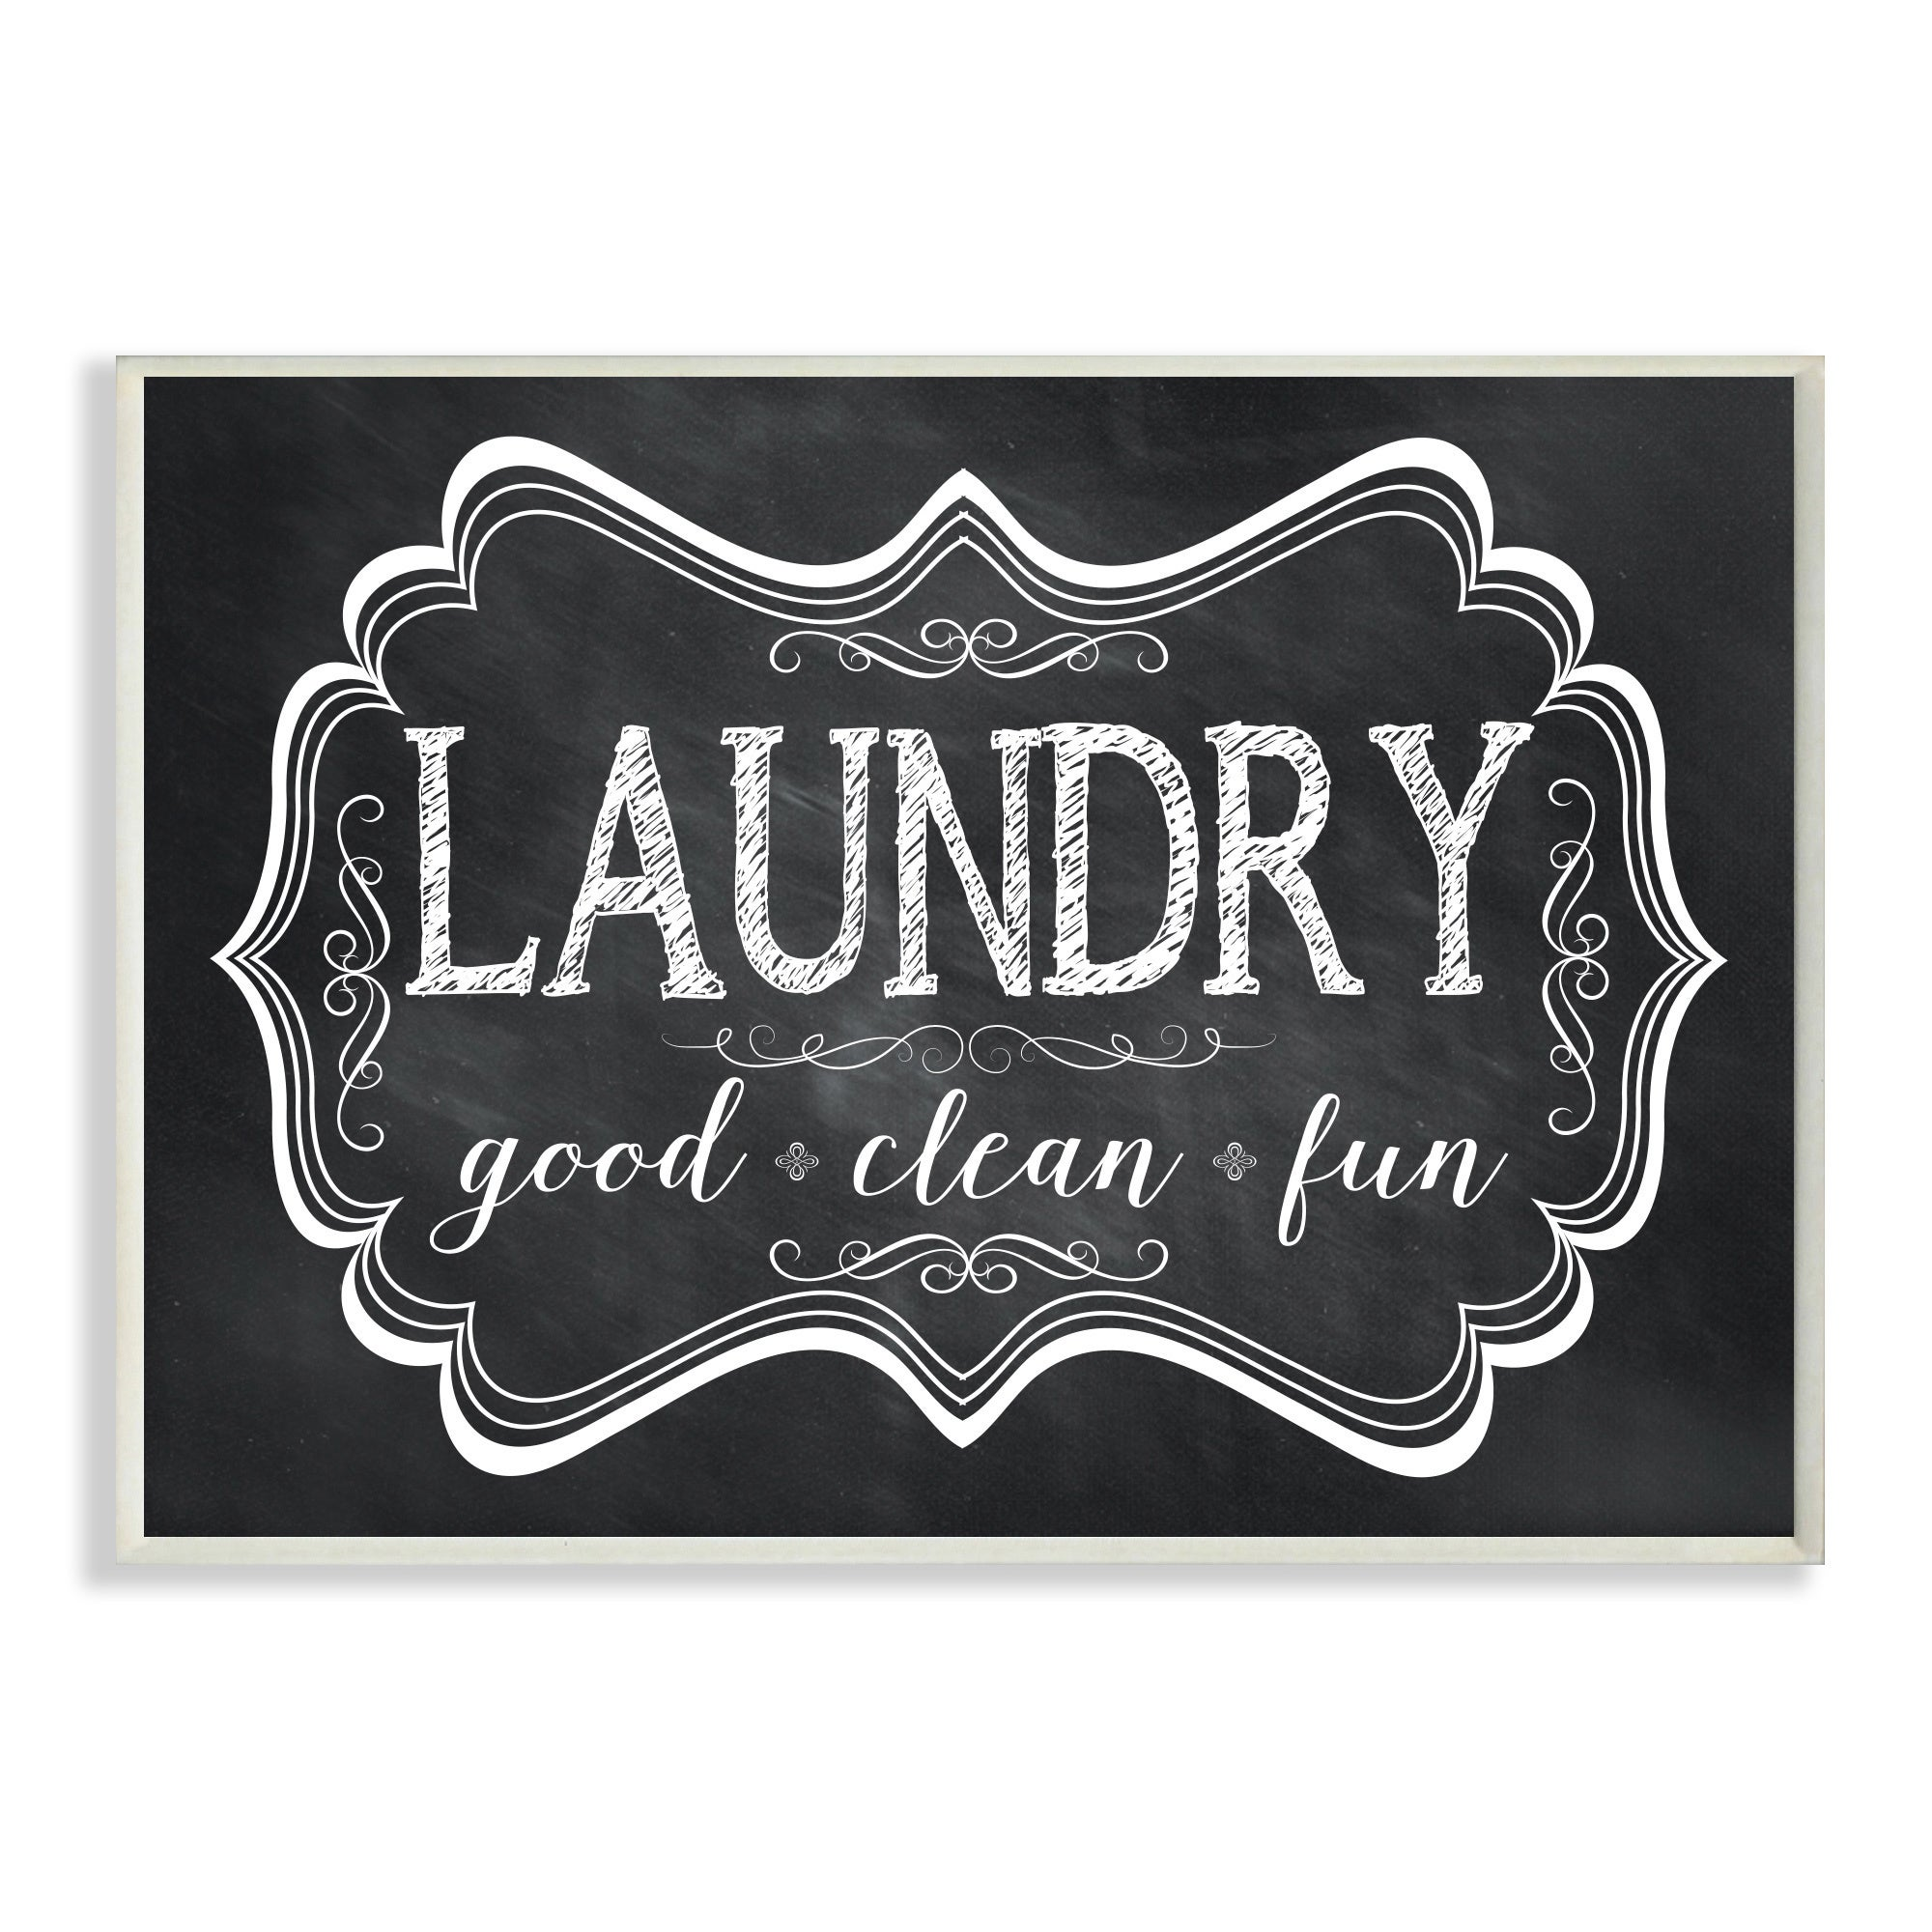 Laundry Wall Plaque Amusing Laundry Good Clean Fun' Chalkboardlook Wall Plaque Art  Free Design Decoration